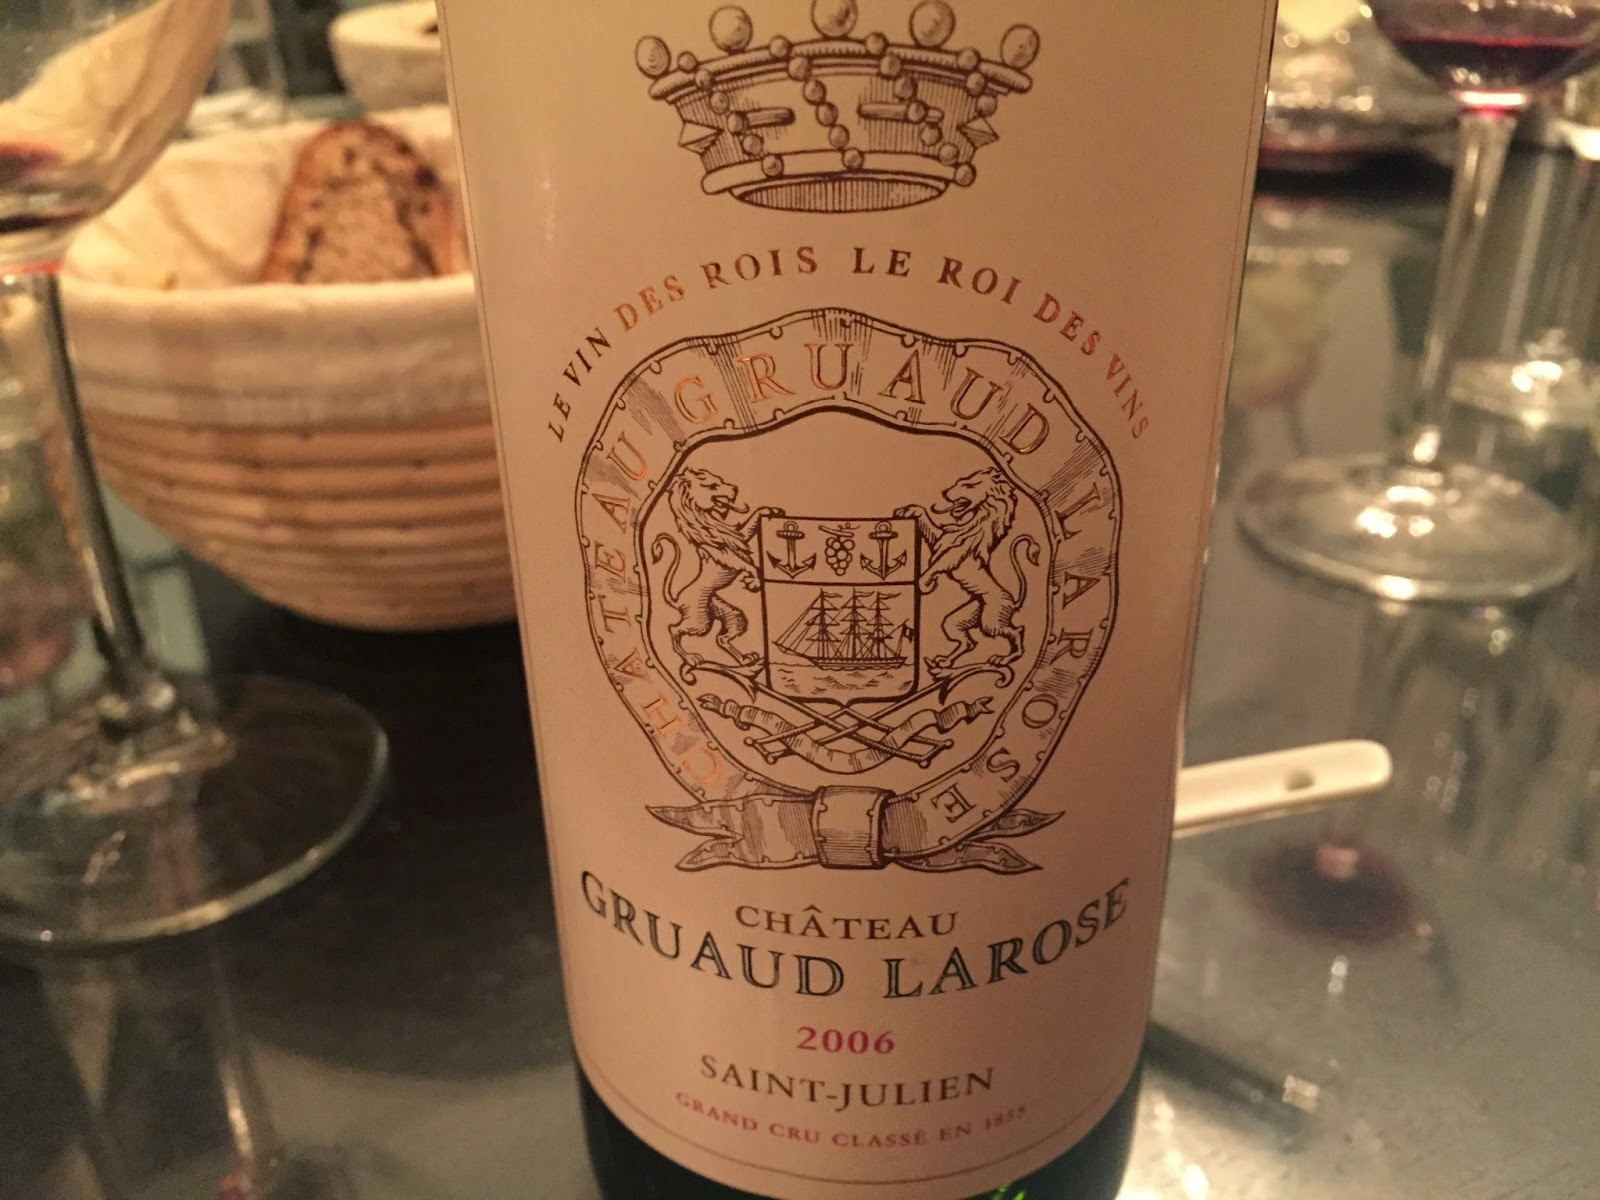 Gruaud La Rose Wine